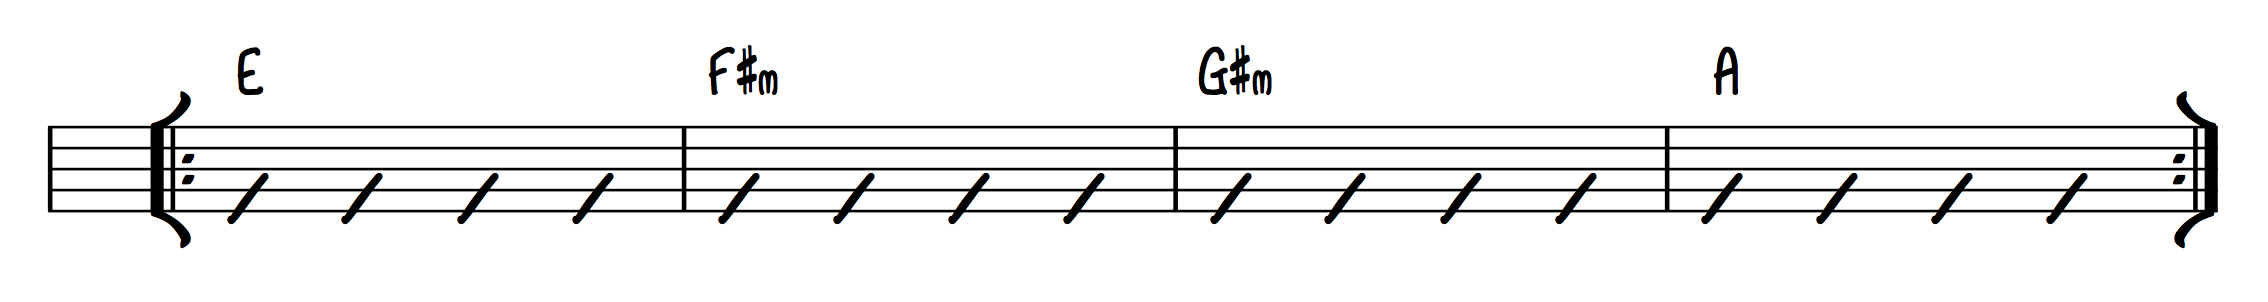 Chord Exercise 4